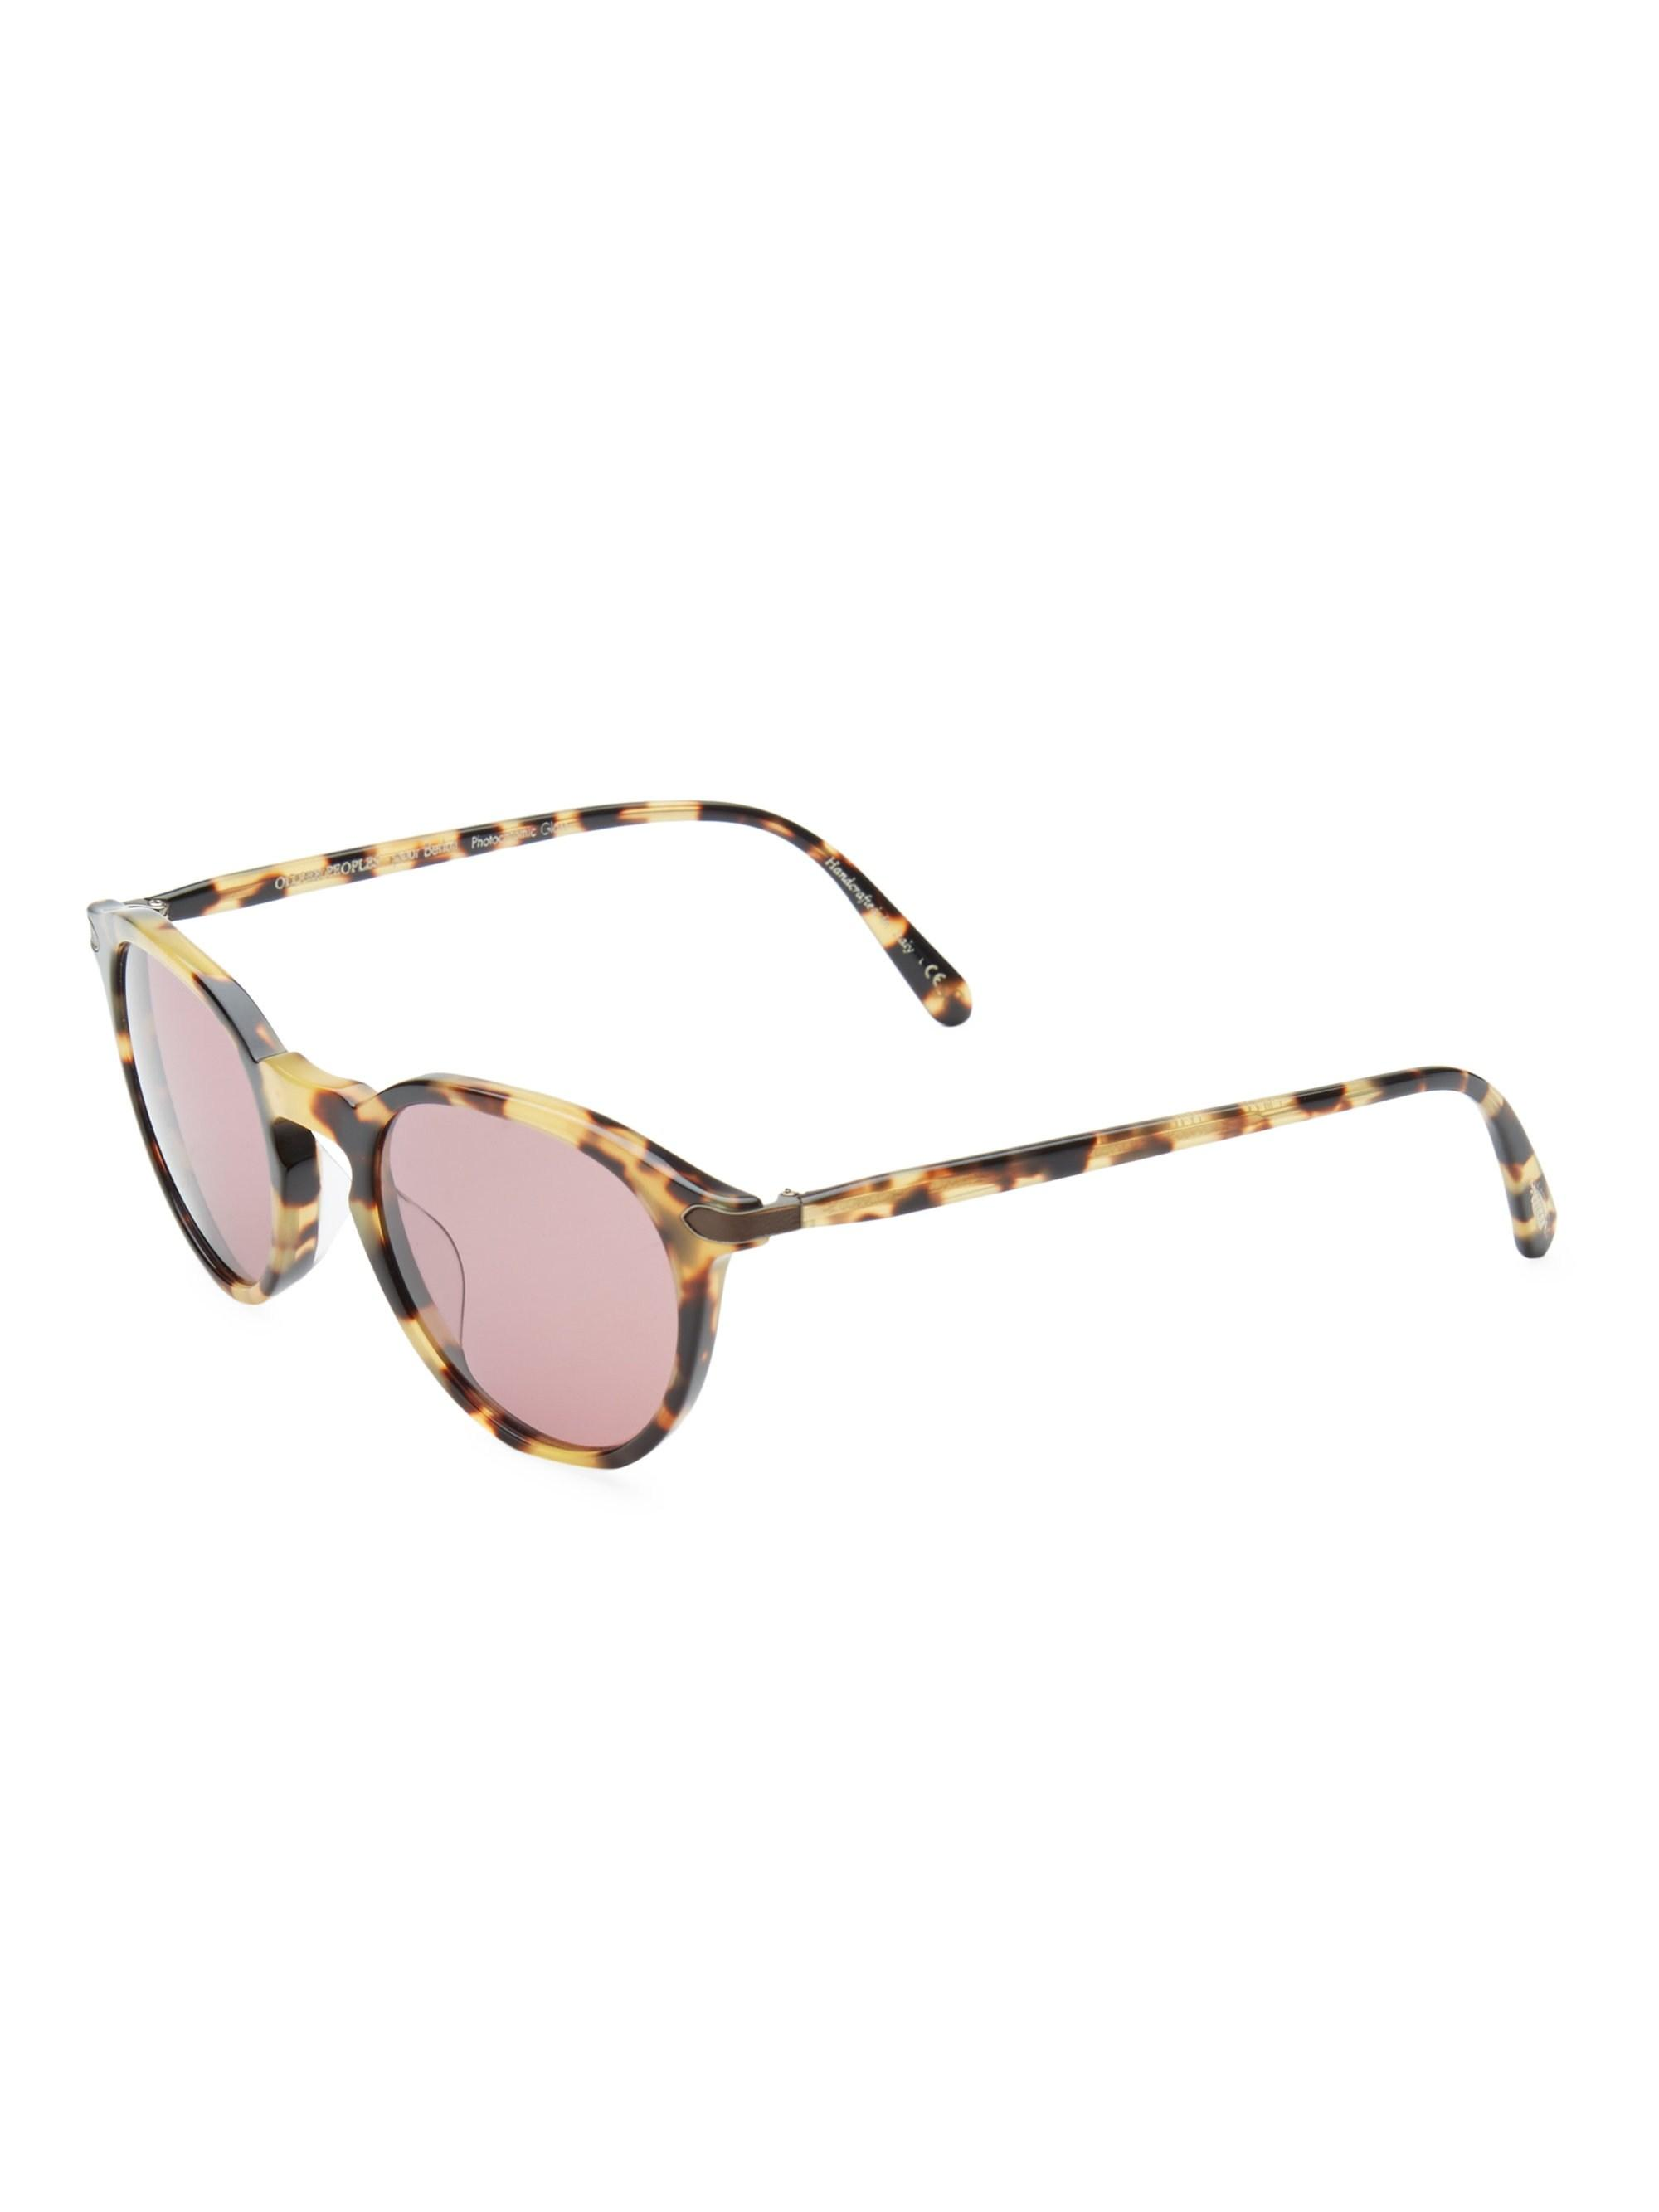 9518272d15 Lyst - Oliver Peoples Rue Marbeuf 50mm Cat Eye Sunglasses in Brown ...